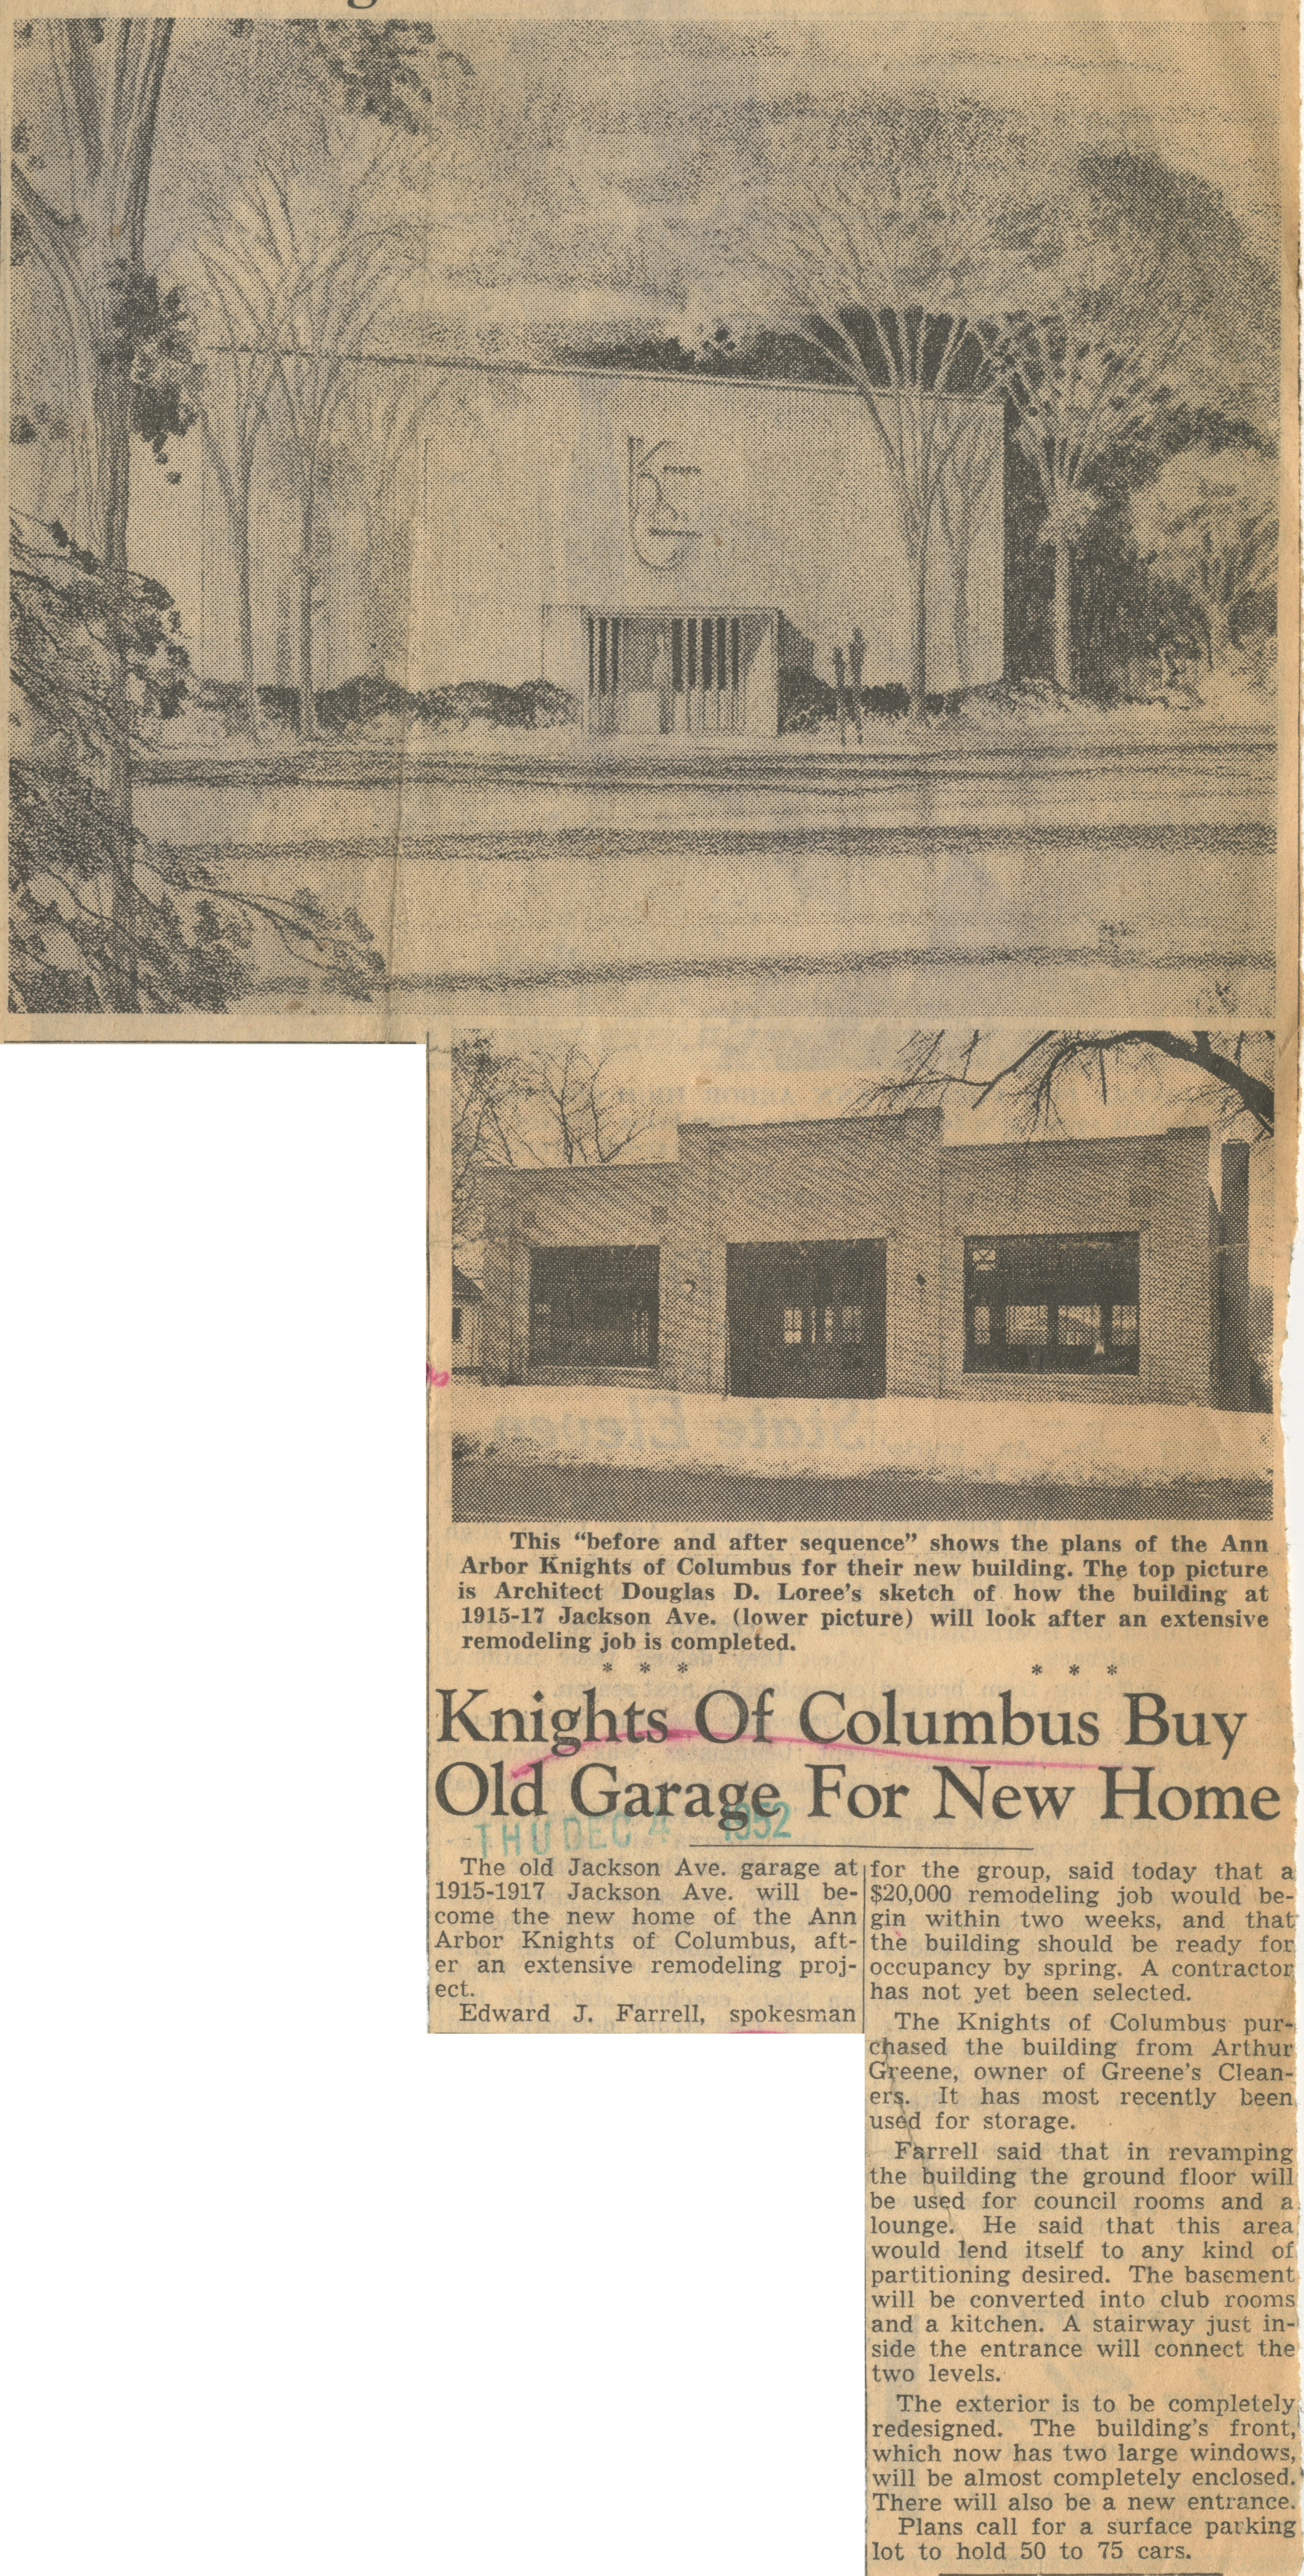 Knights Of Columbus Buy Old Garage For New Home image